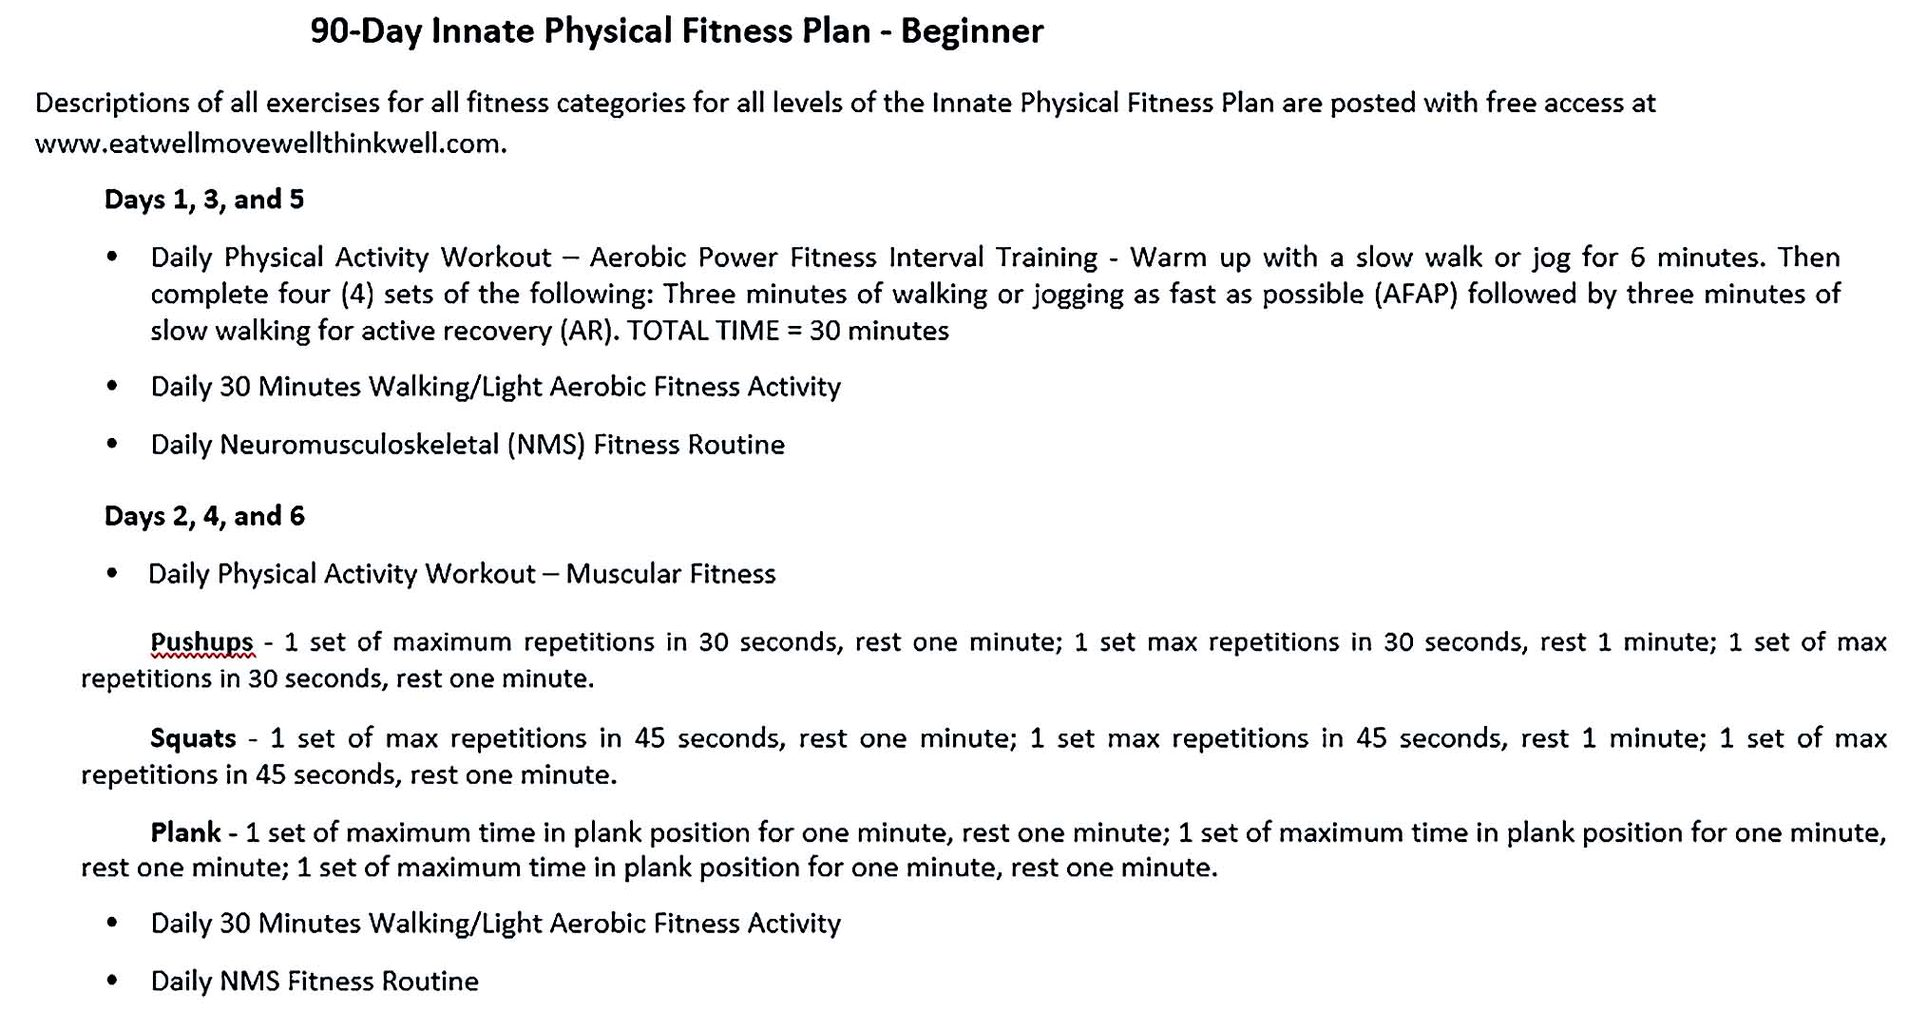 90 Day Innate Physical Fitness Plan